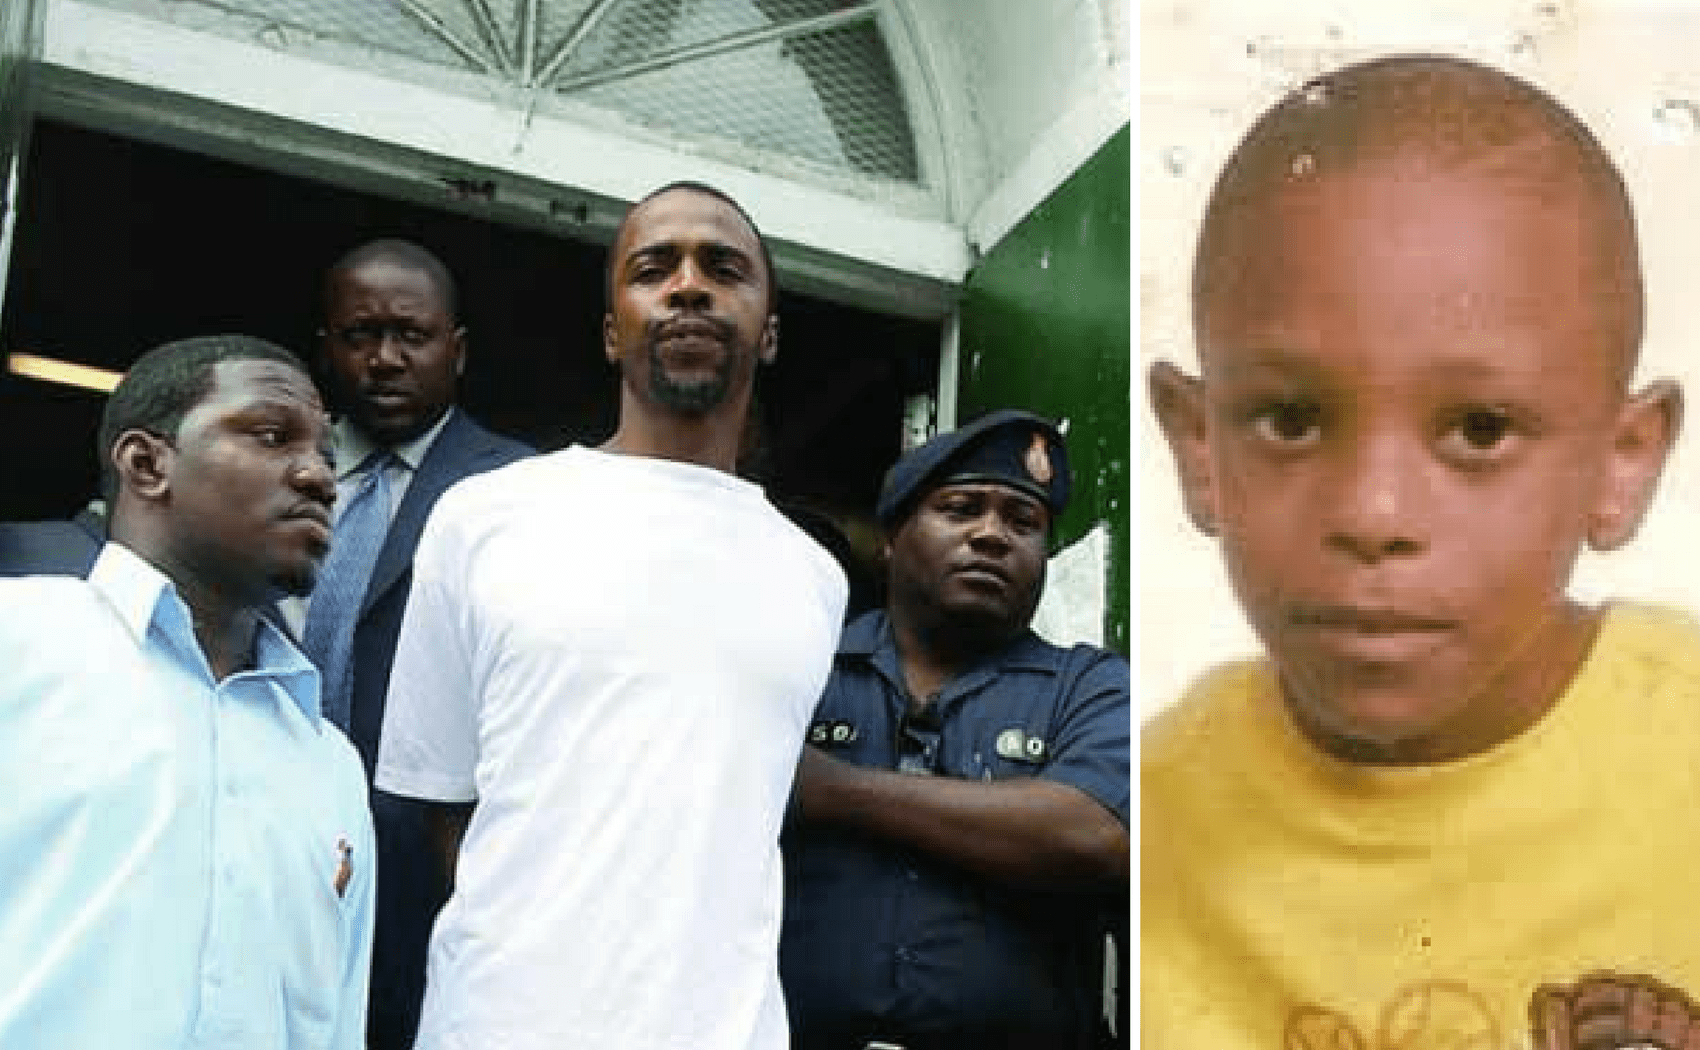 Marco's killer gets life instead of death